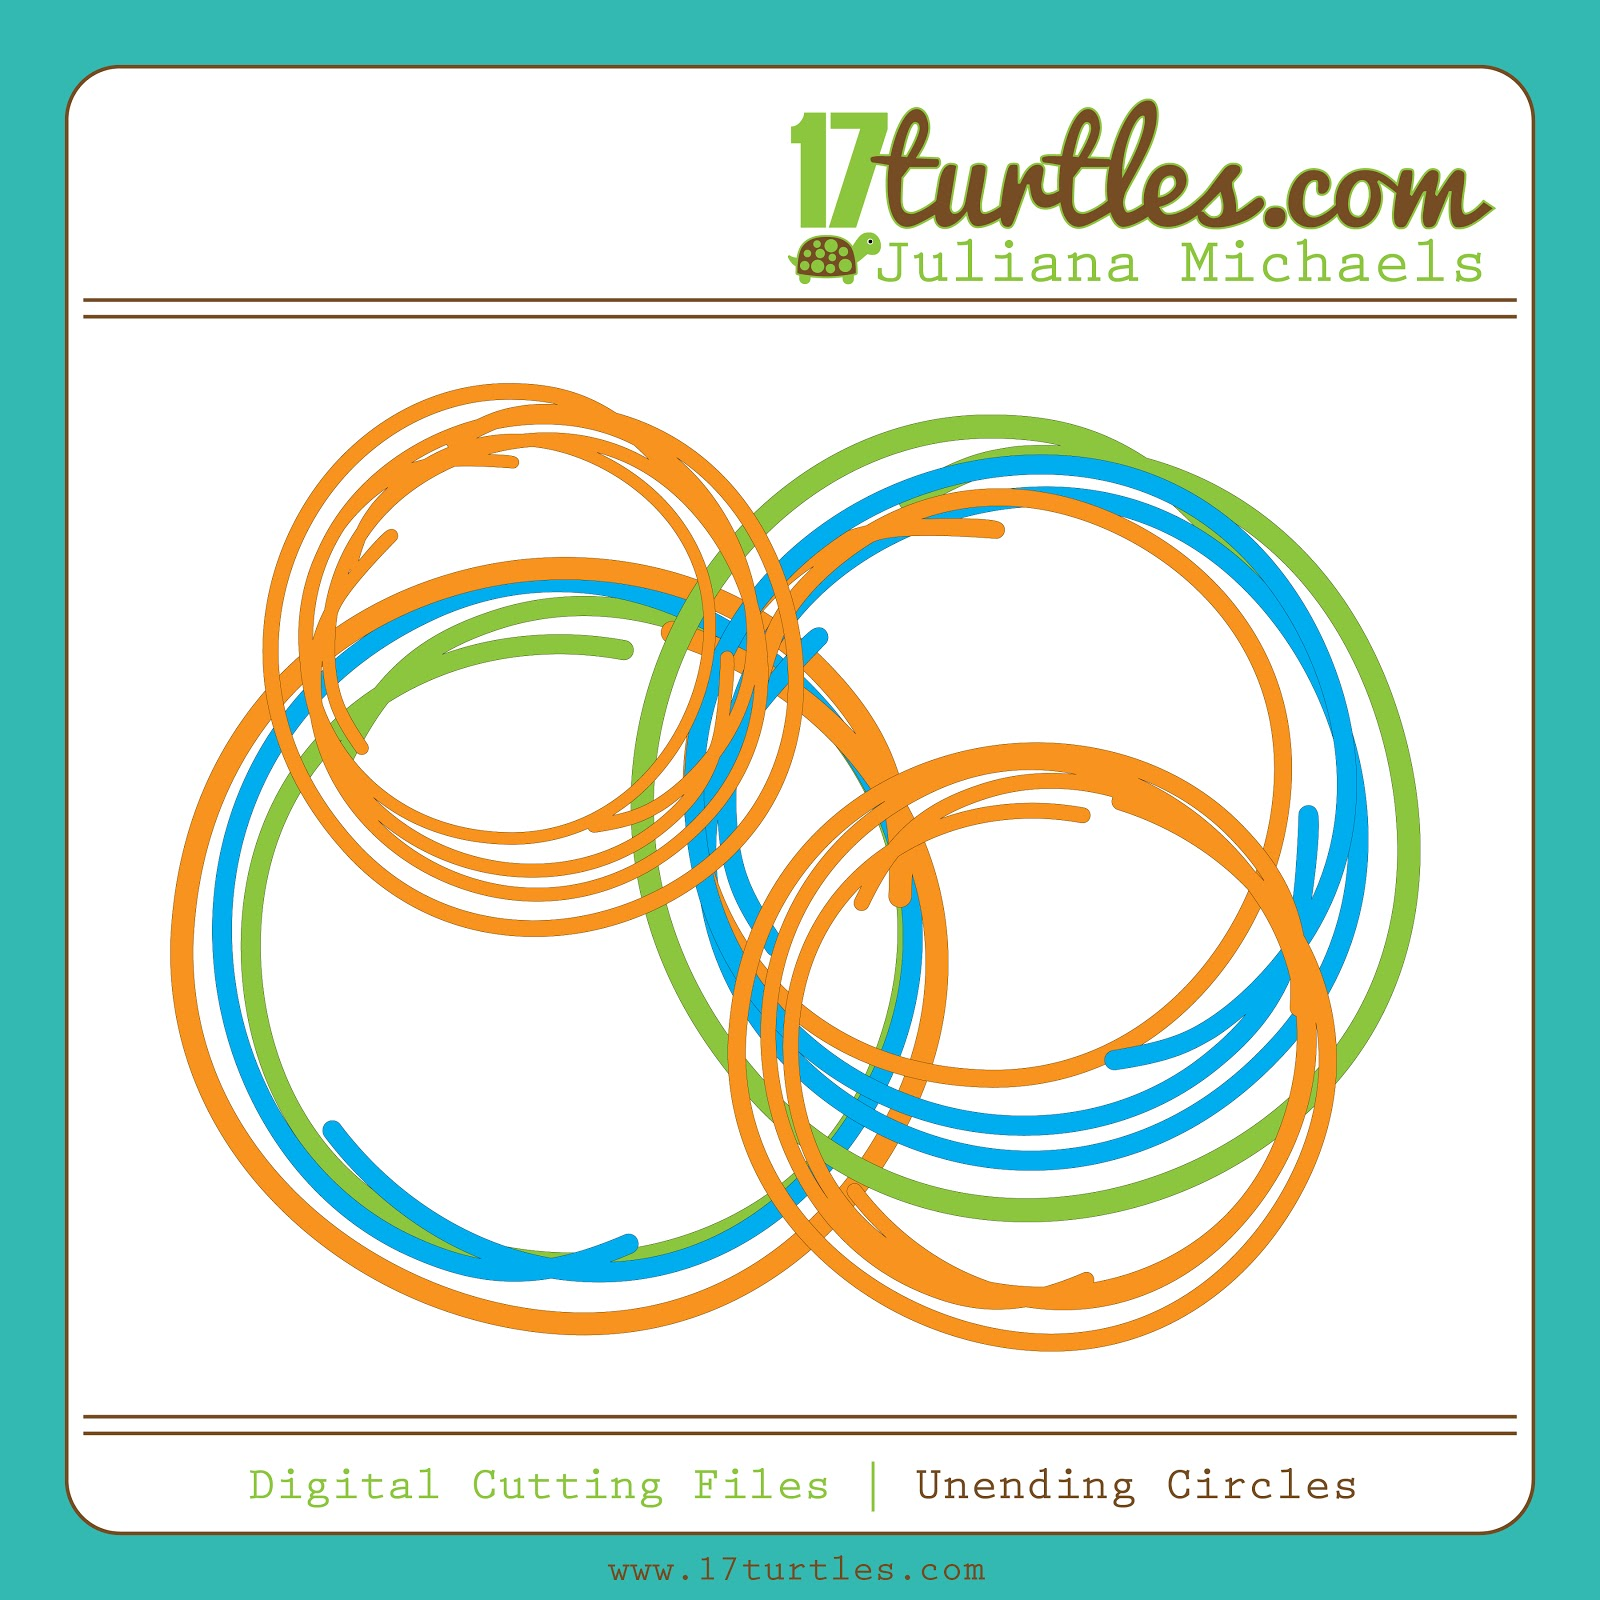 17turtles Digital Cut Files Unending Circles